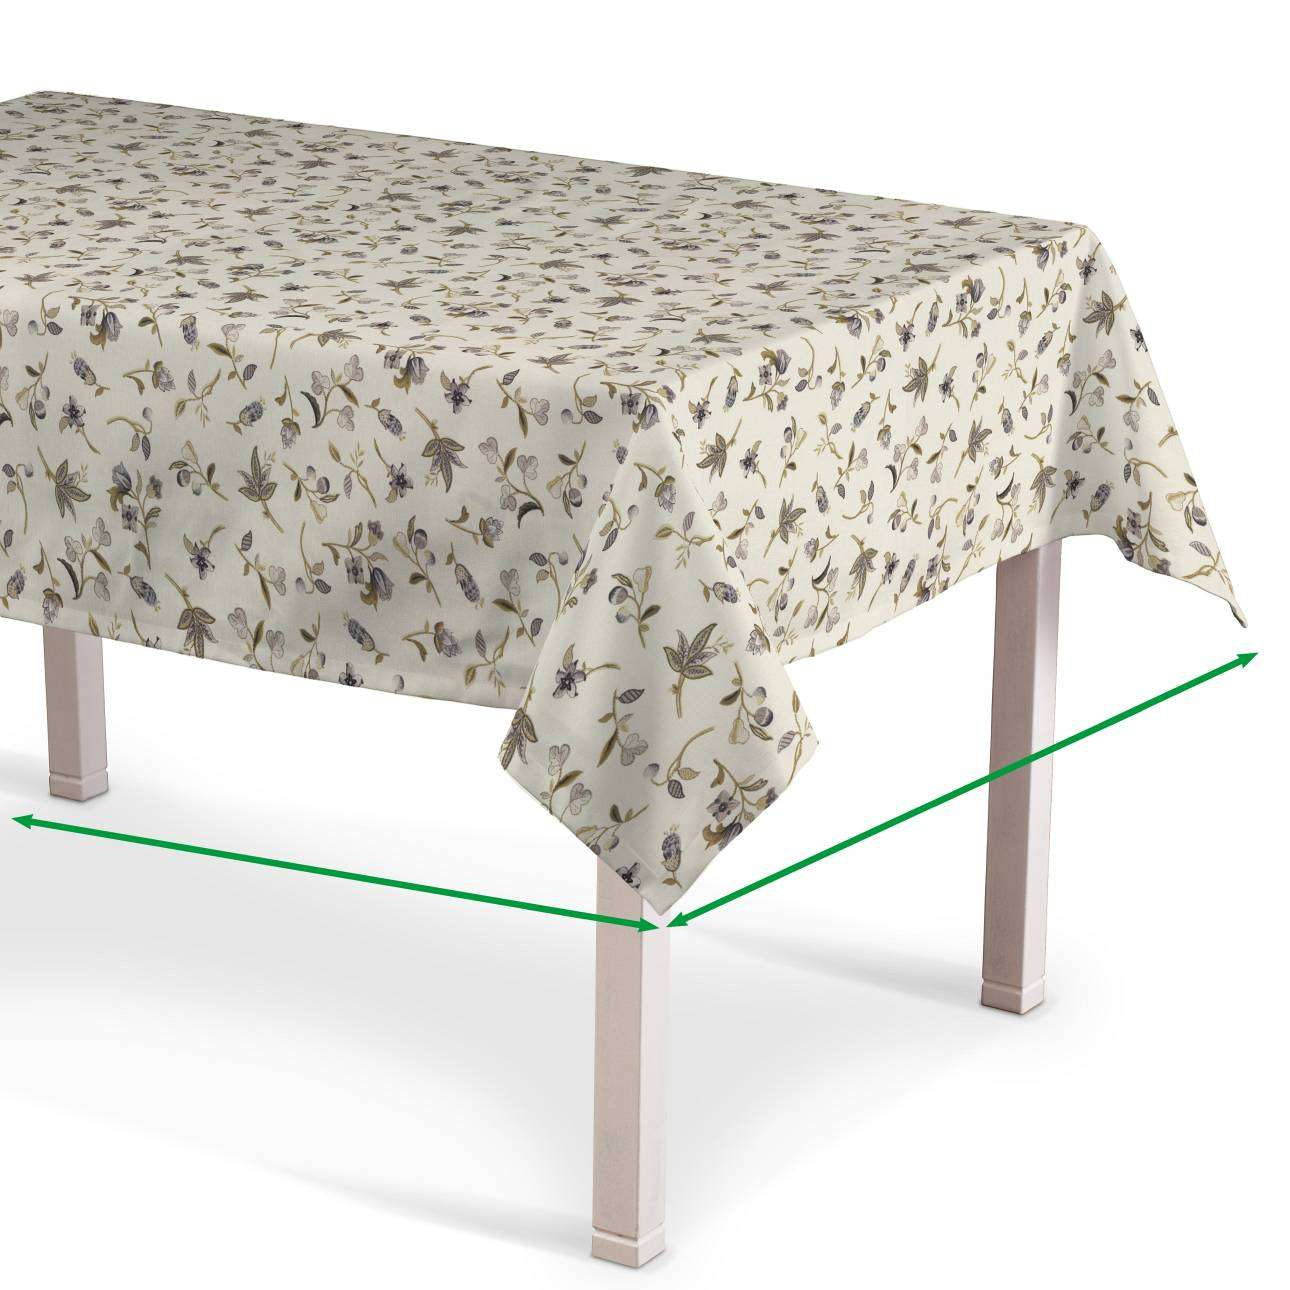 Rectangular tablecloth in collection Londres, fabric: 122-04